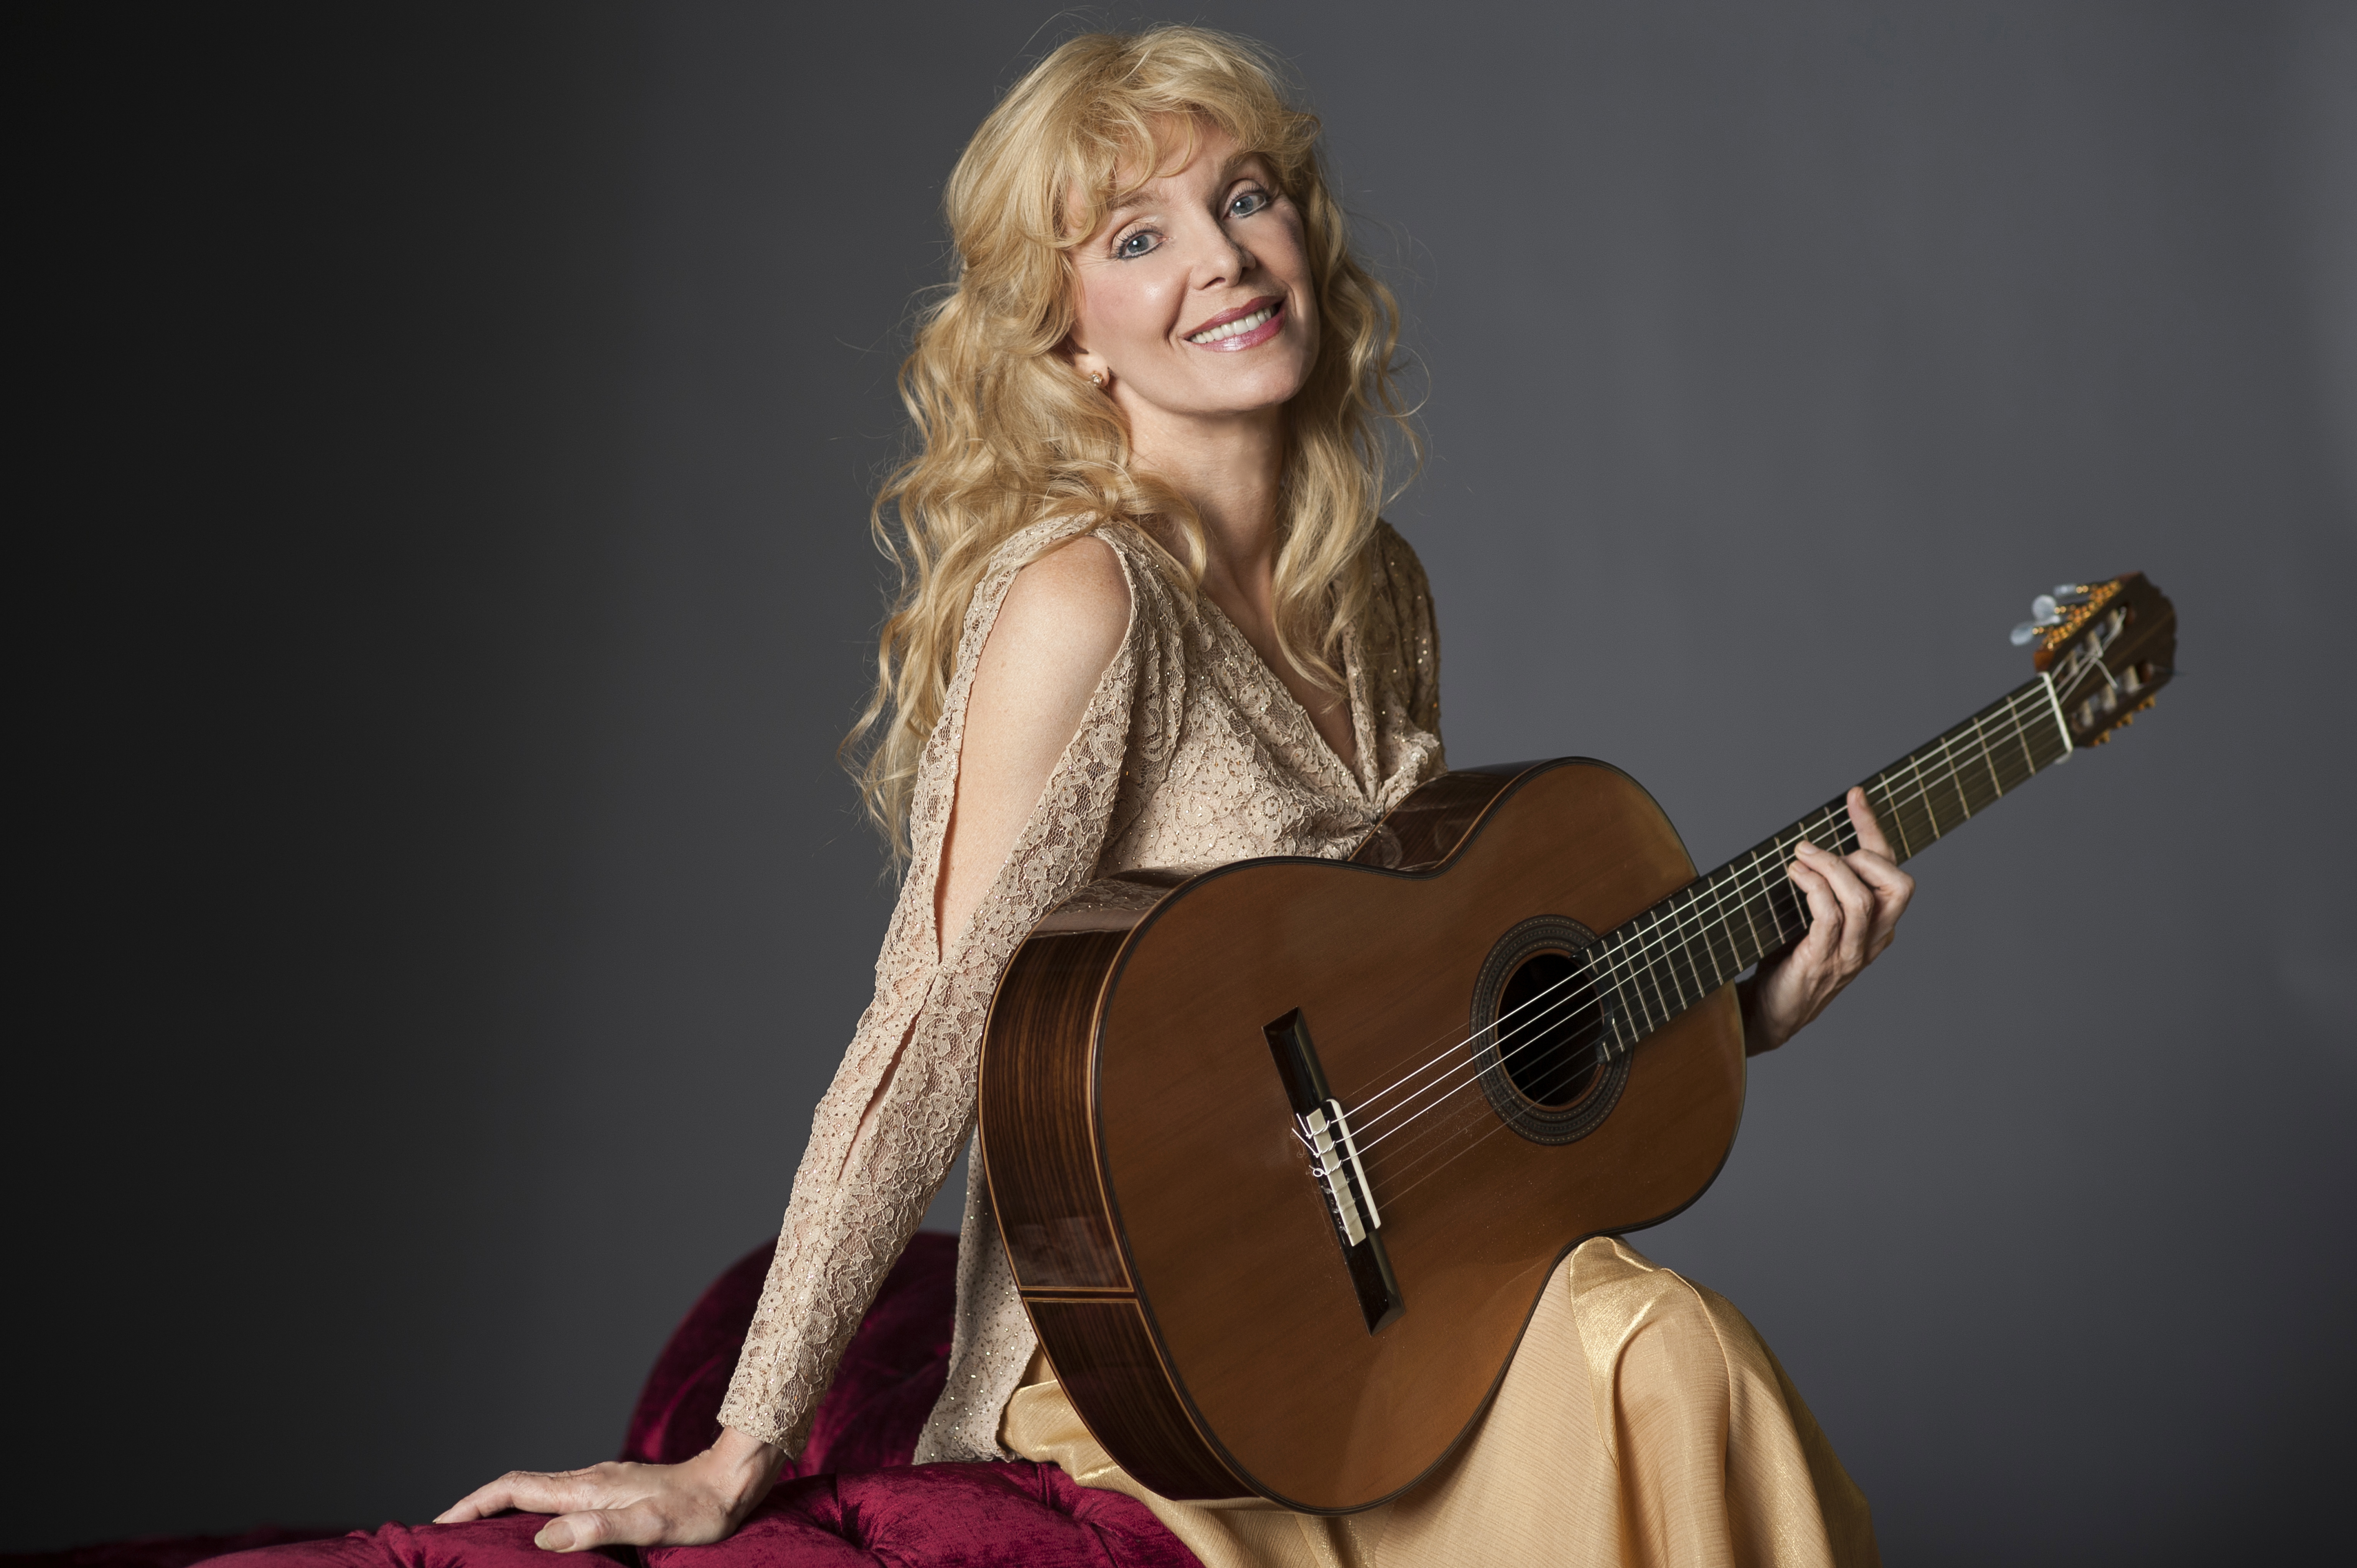 First Lady of Classical Guitar coming to Cornwall